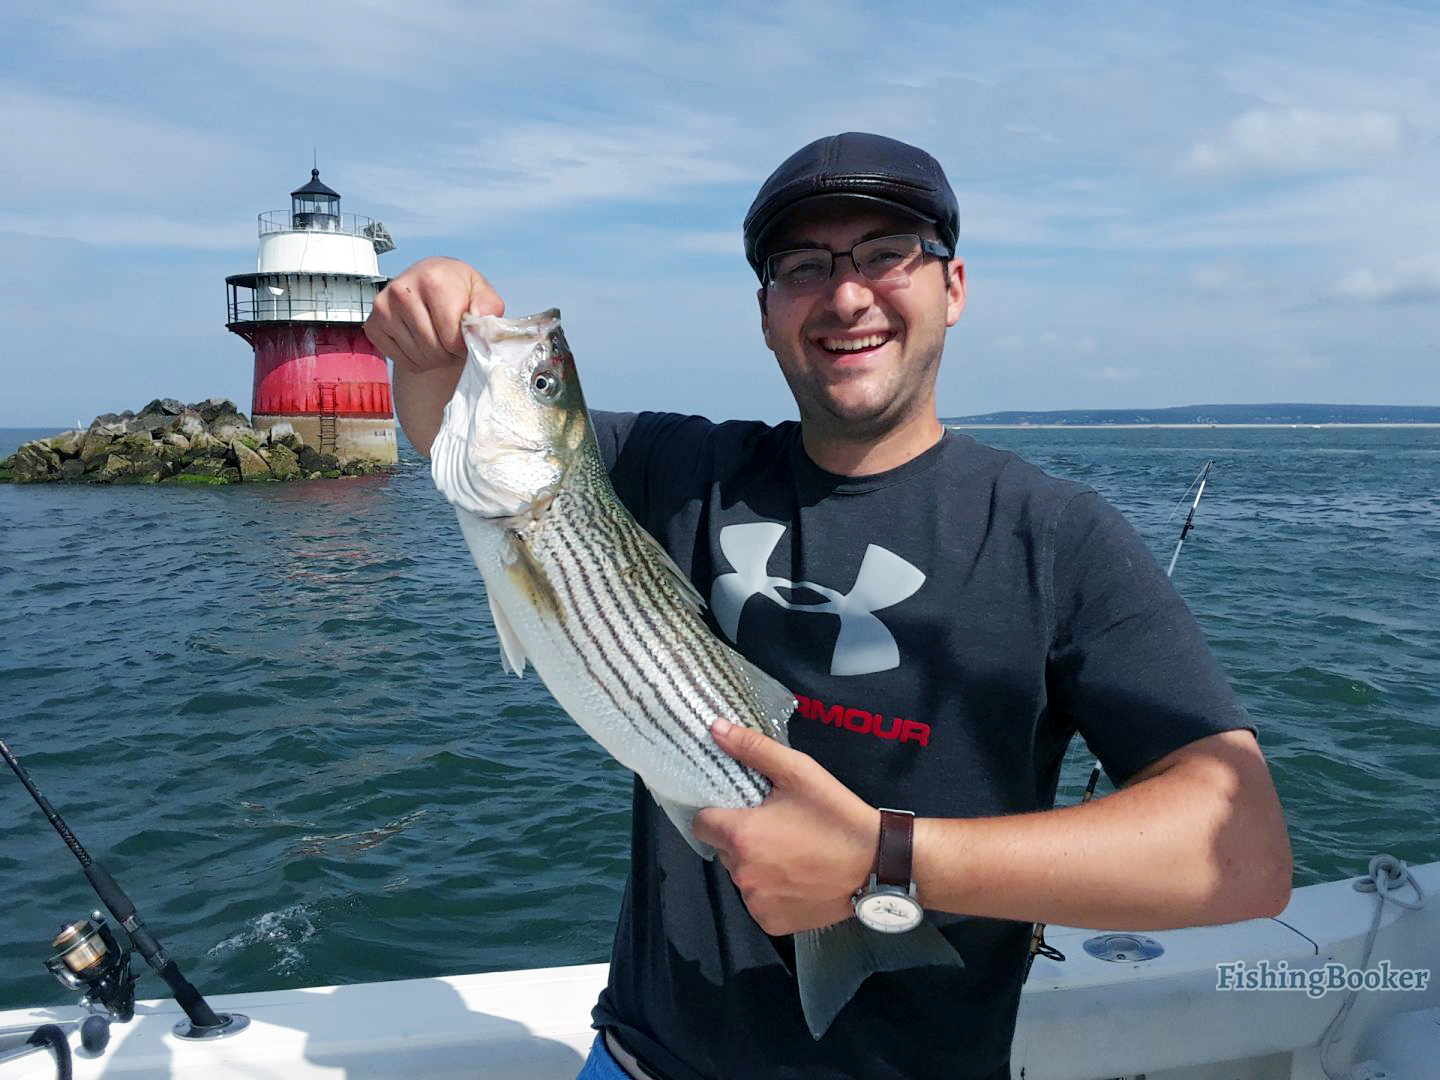 a smiling angler holding a striped bass on a fishing boat near Plymouth, a popular fishing spot near Boston